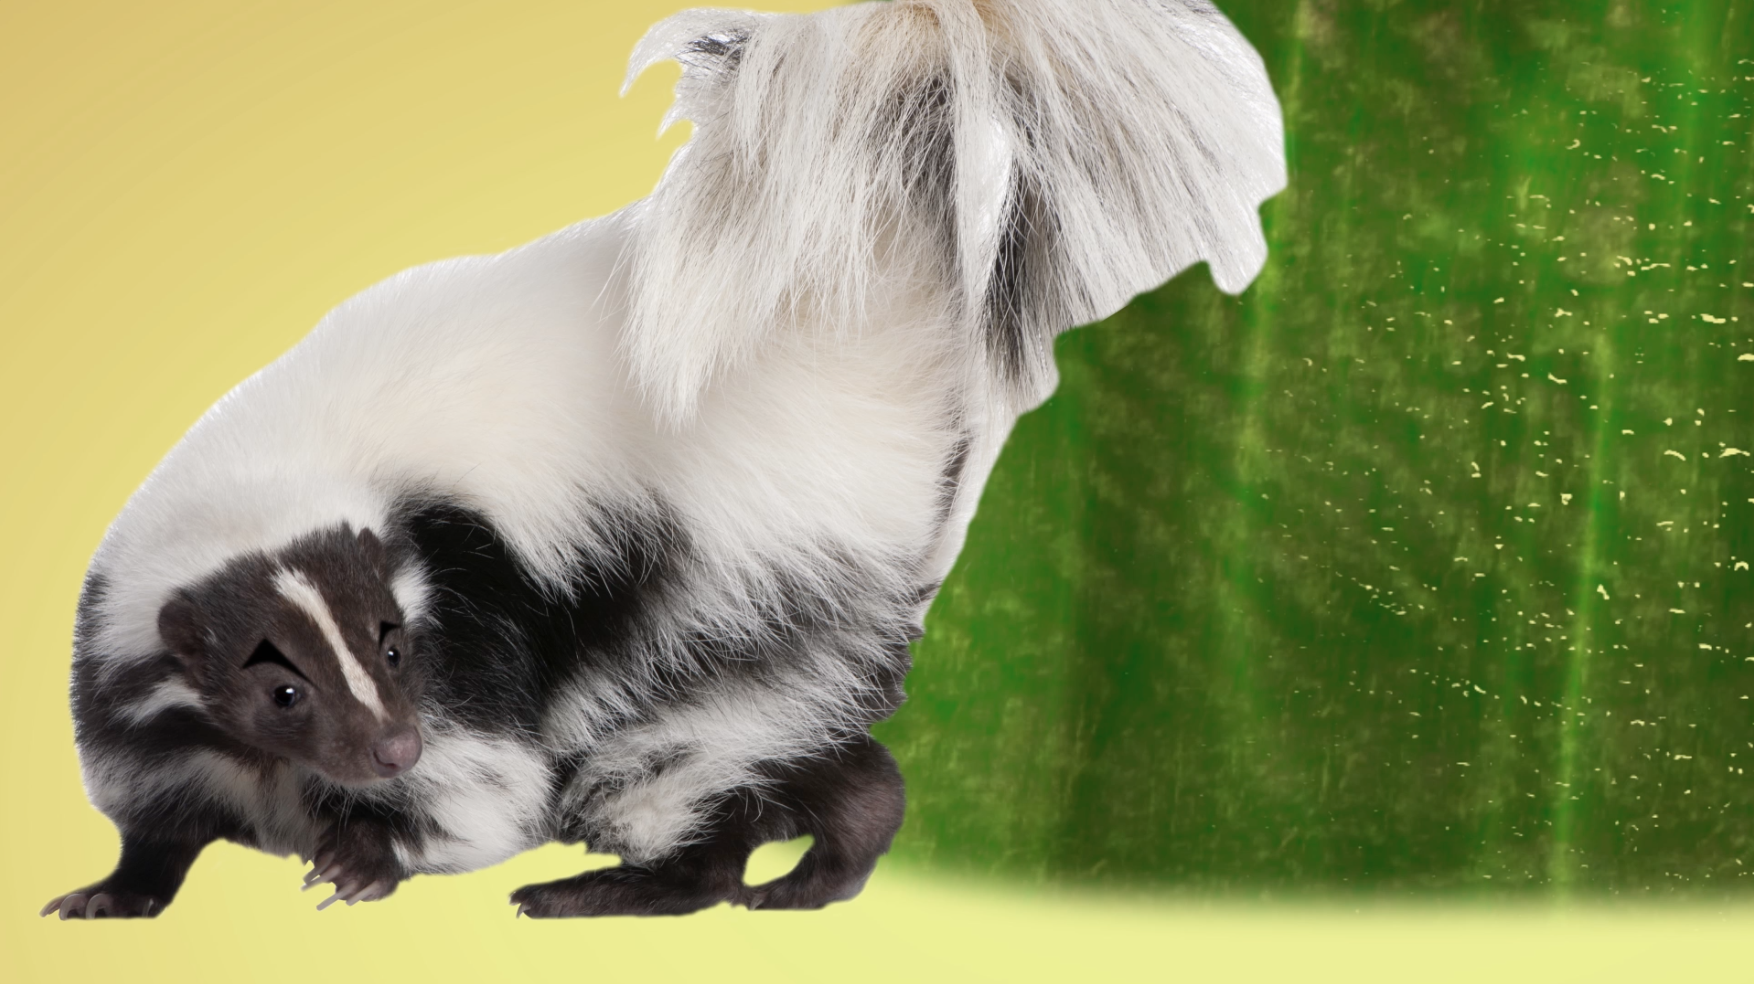 Ask Smithsonian: What Makes Skunk Spray Smell So Terrible